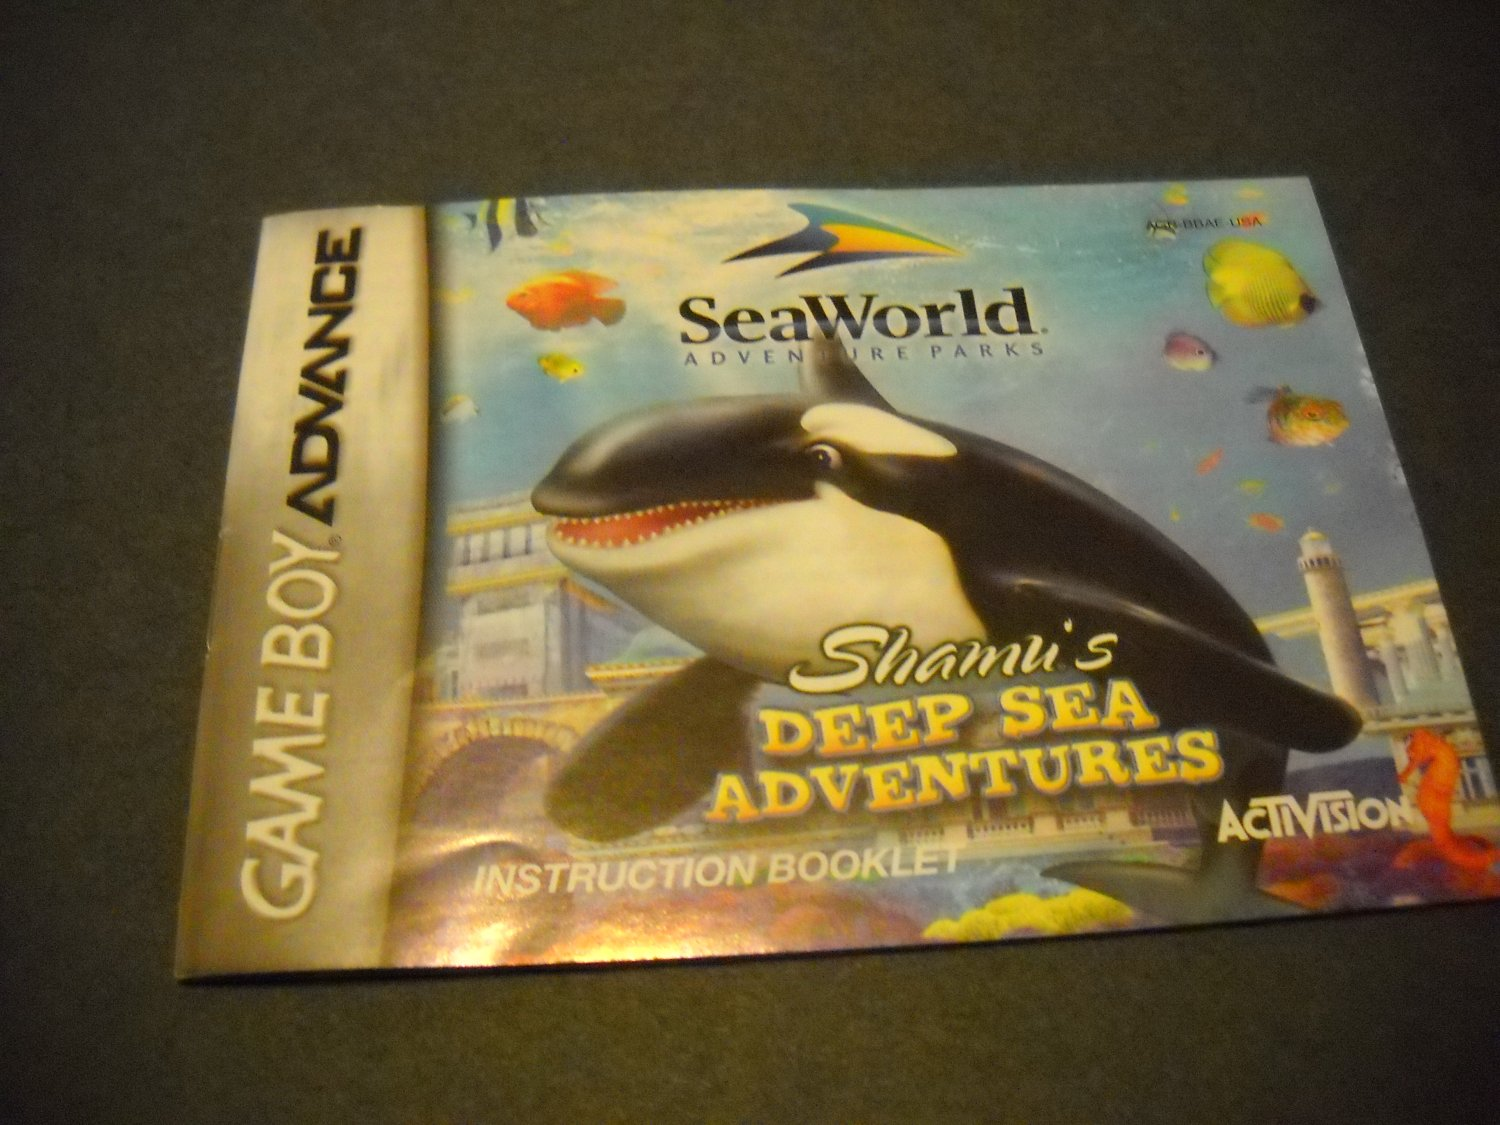 Manual ONLY ~  for Shamu's Deep Sea Adventures  Gameboy Advance